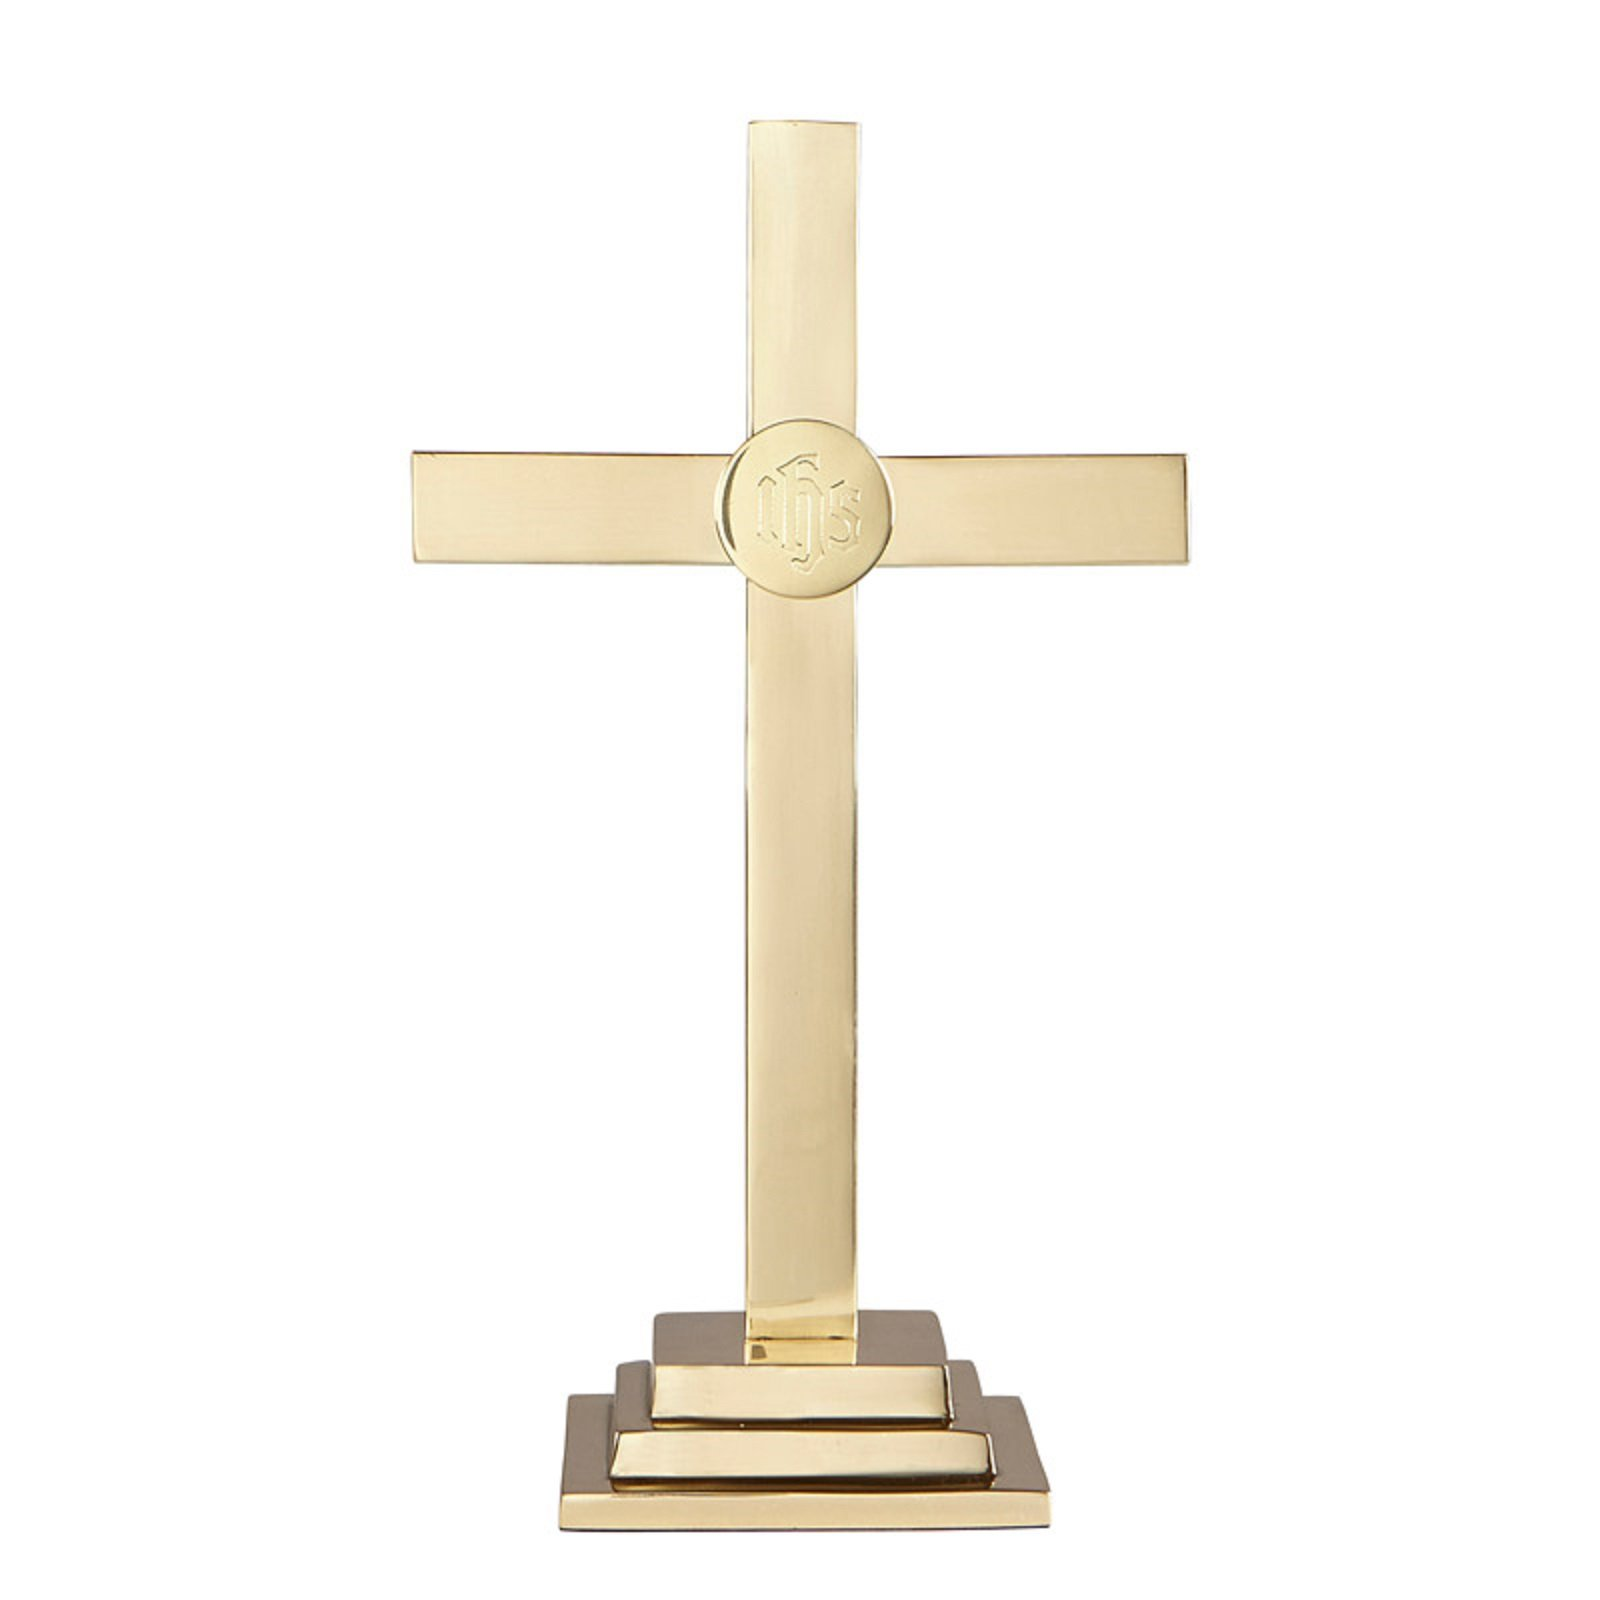 15 Inch Altar Cross - Square Base - Highest Quality - Made of Solid Brass